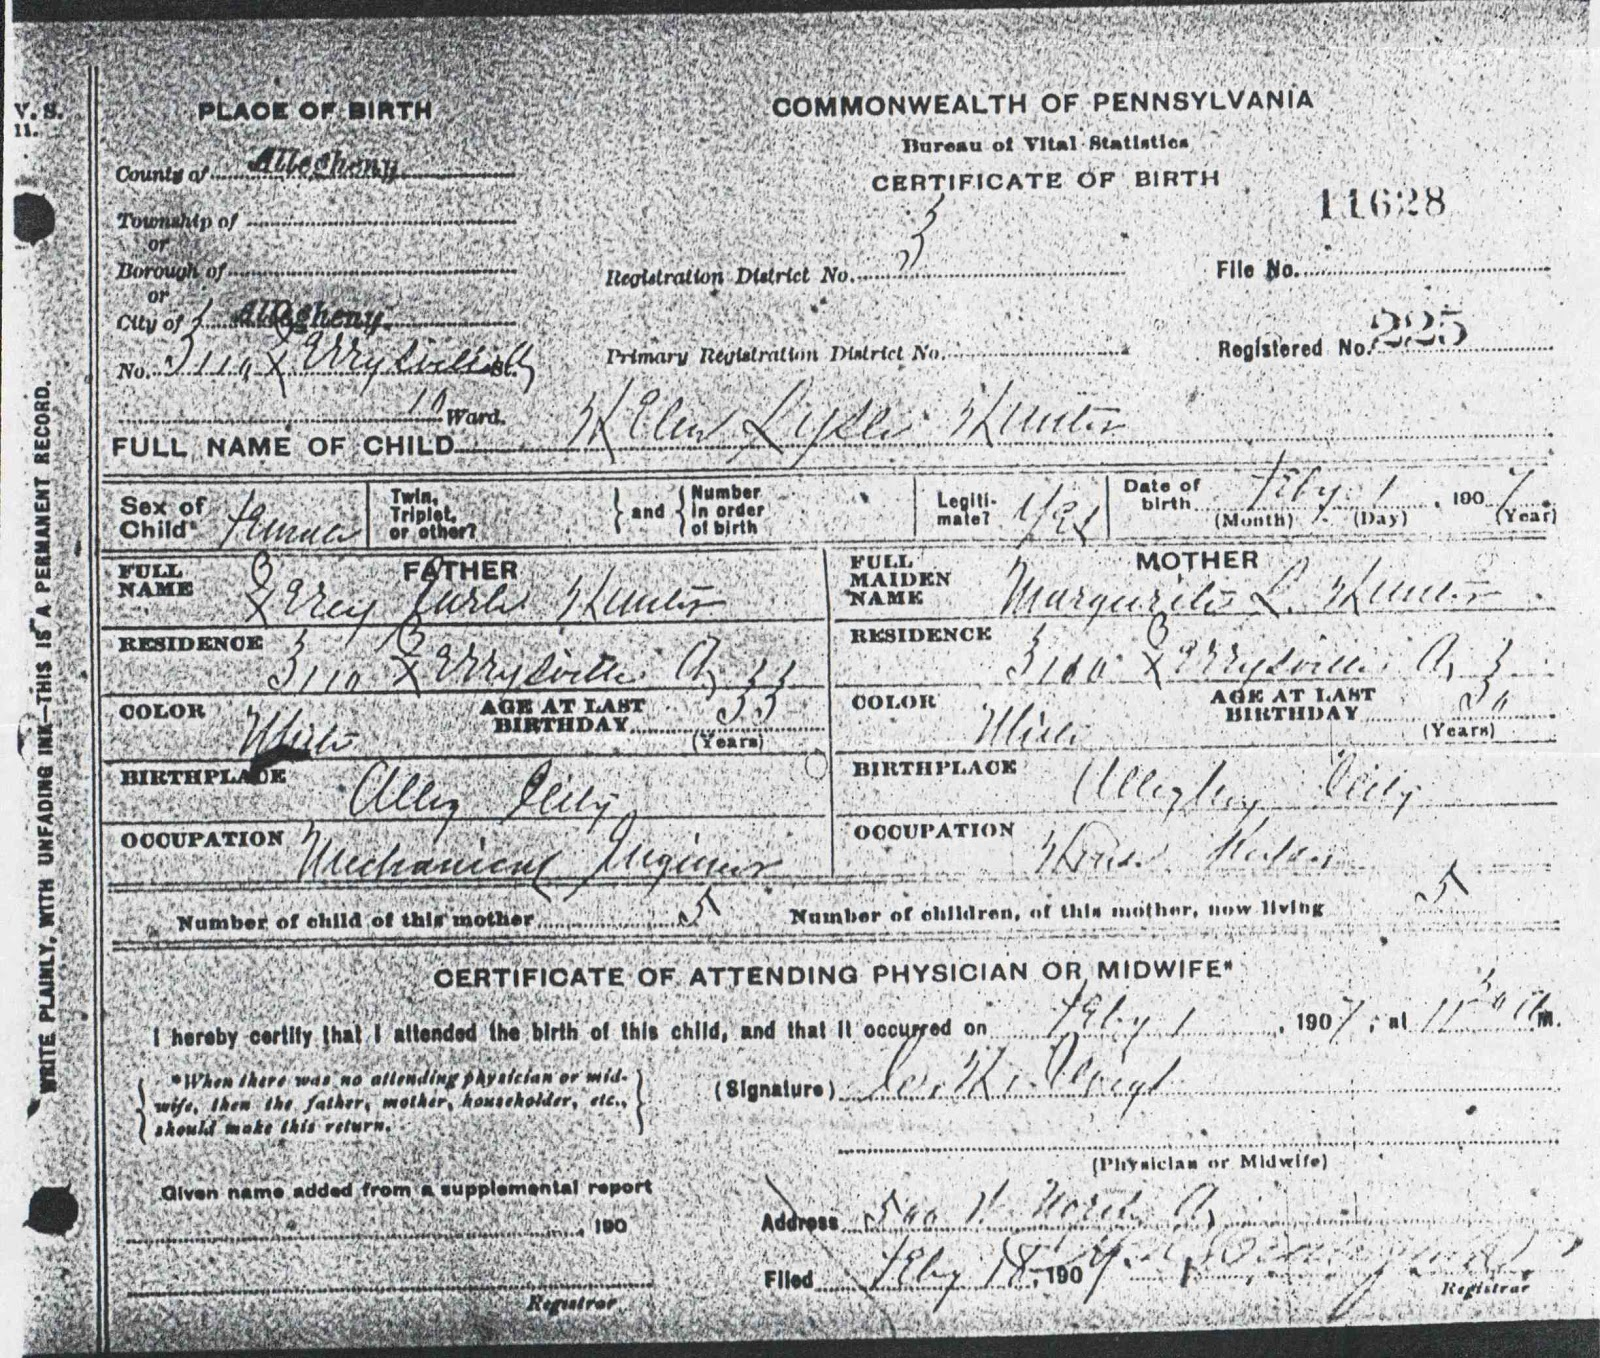 From Maine To Kentucky Grandmothers Birth Certificate